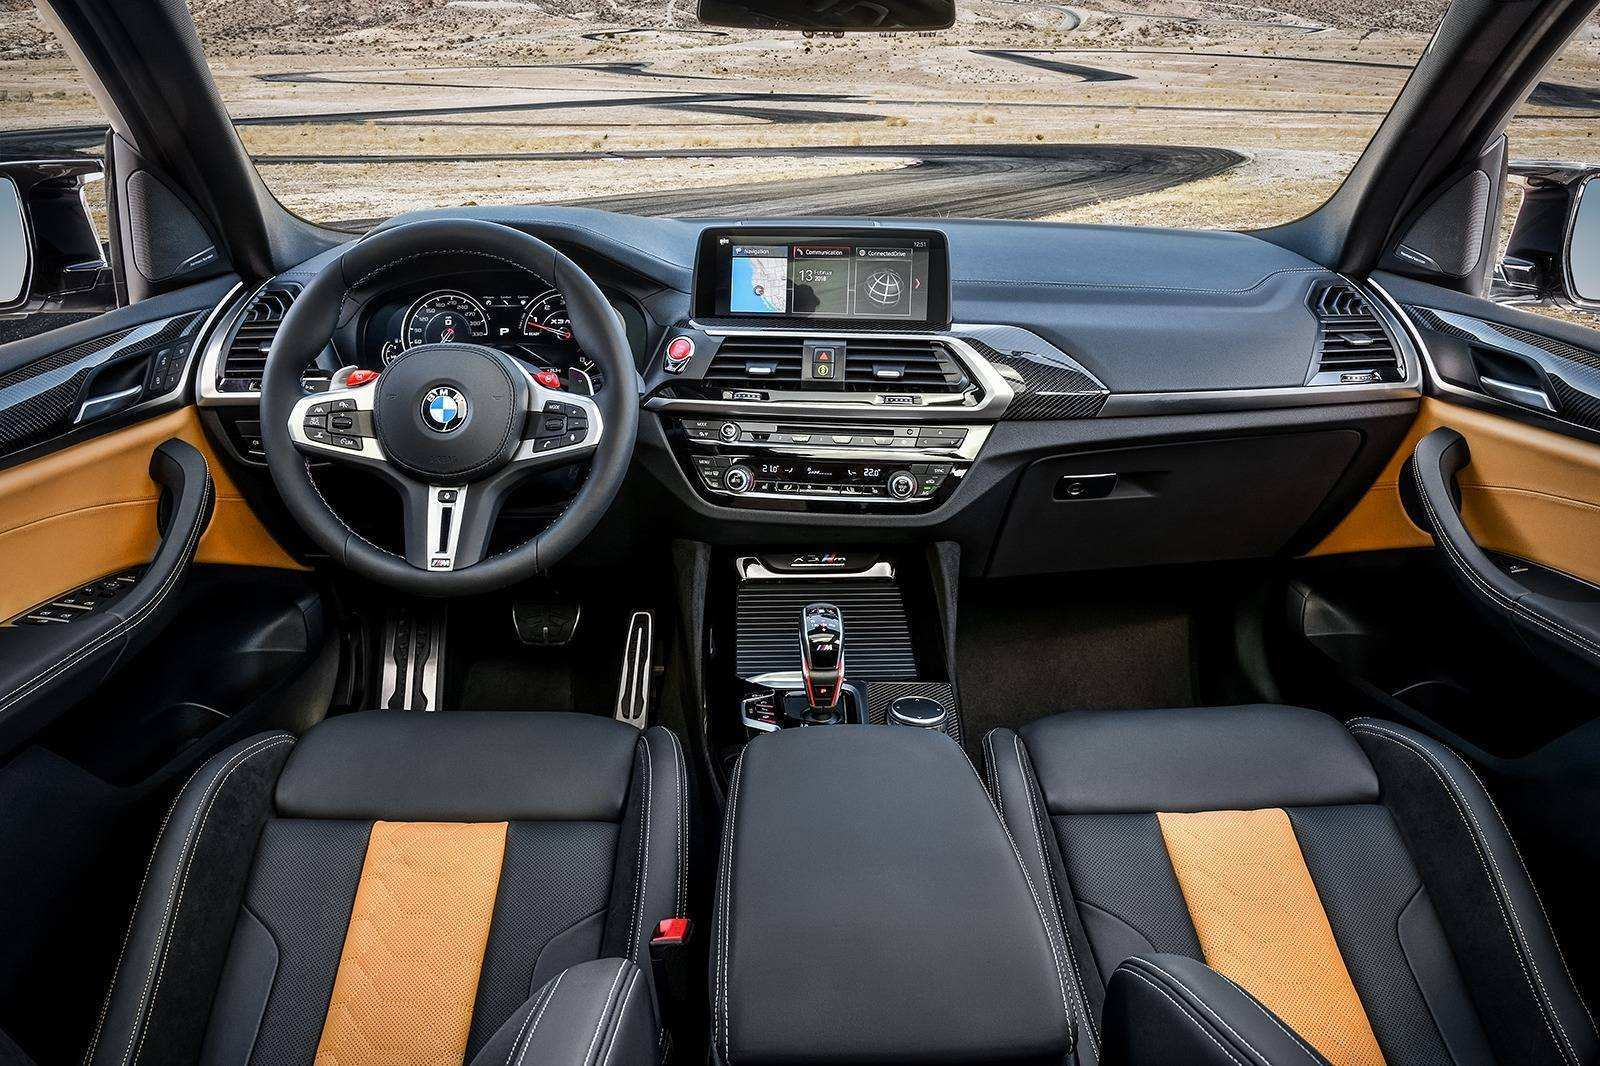 98 The Best When Do 2020 BMW X3 Come Out Release Date And Concept